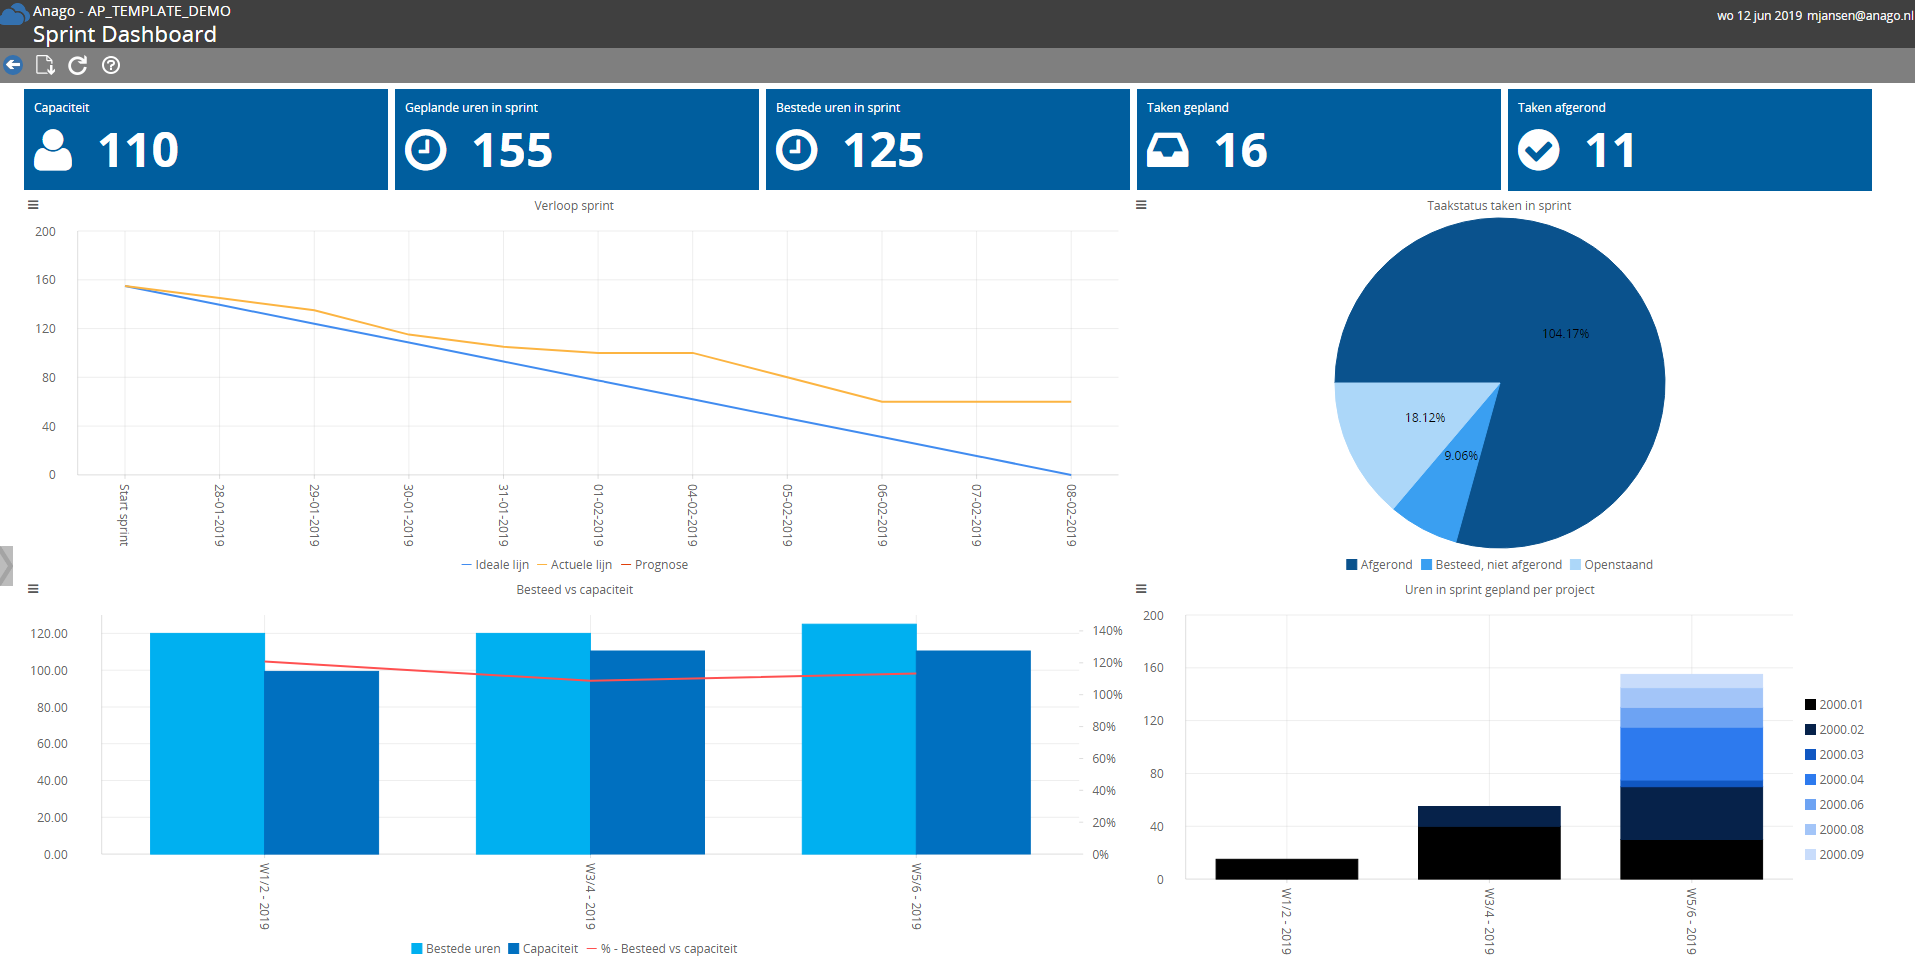 dASHBOARD SPRINTPERFORMANCE UIT aNAGO aGILE pLANNING OPLOSSING